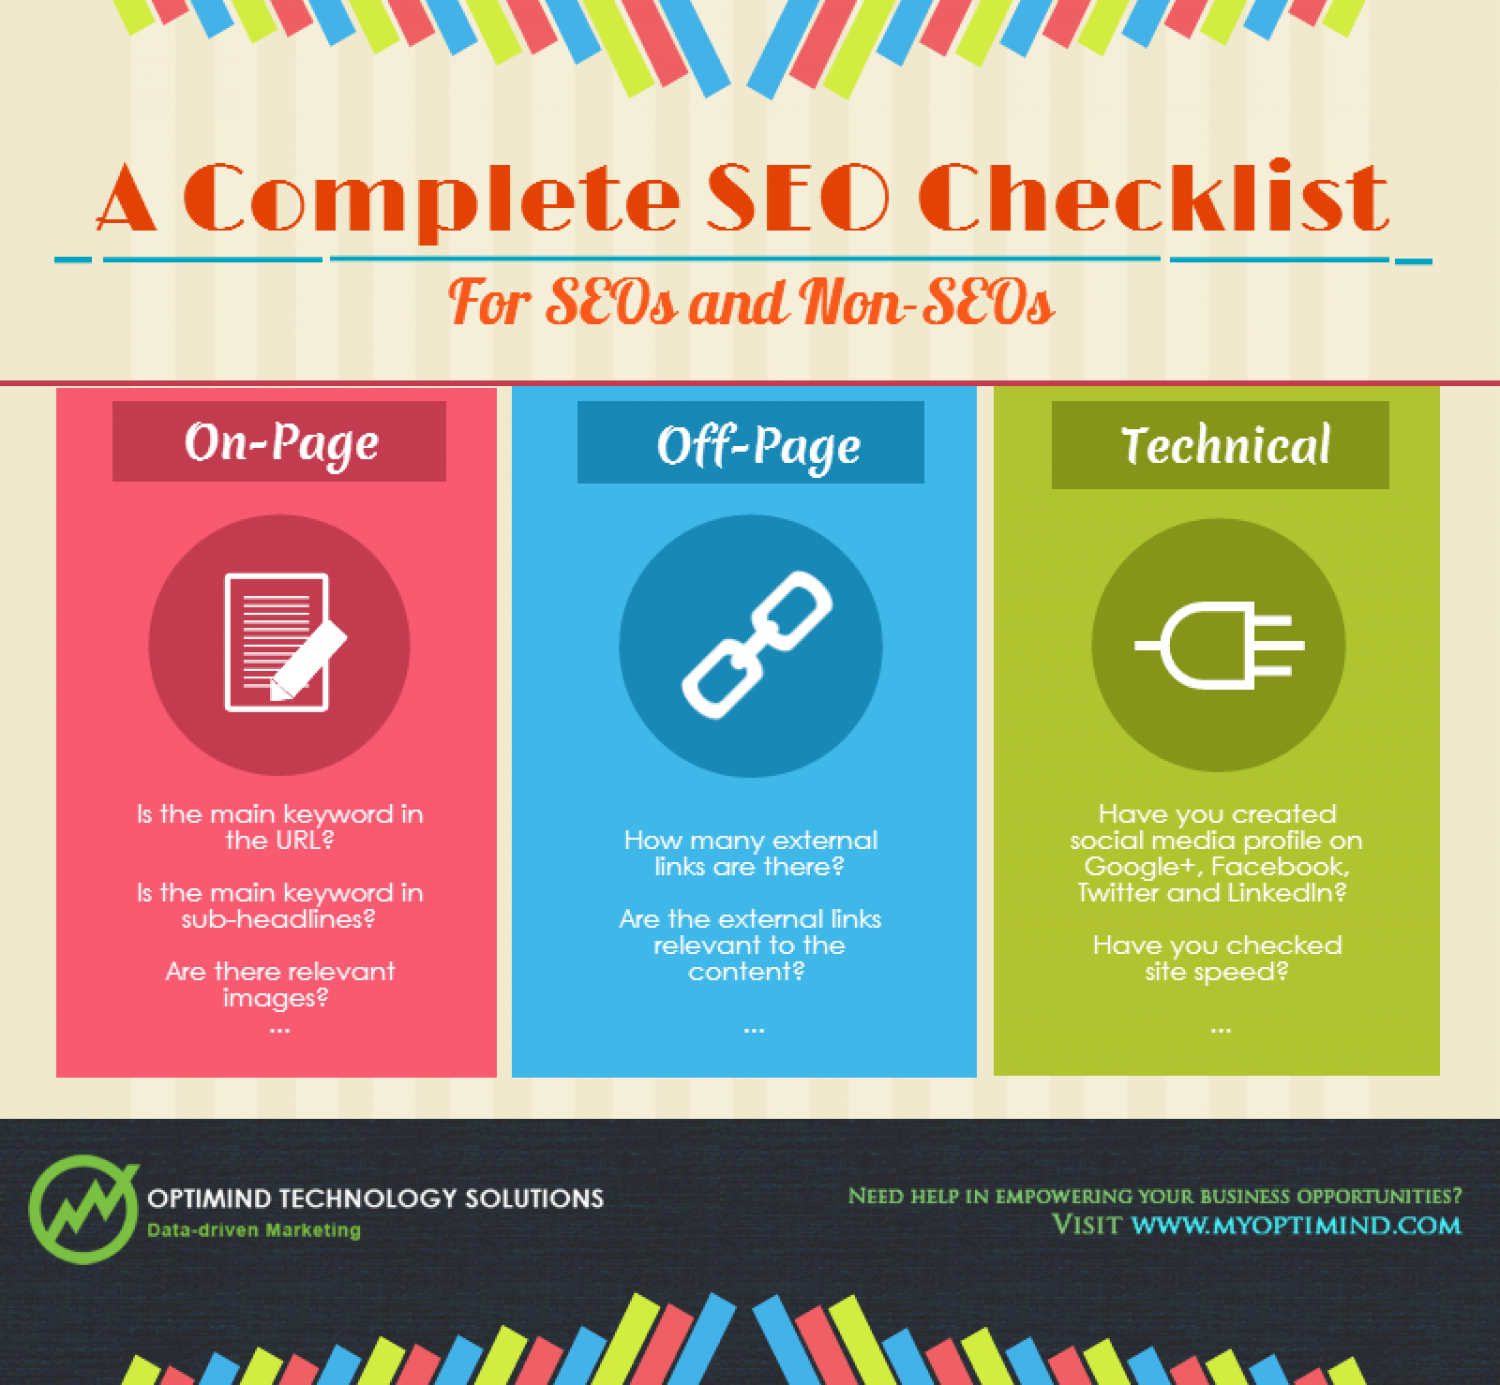 A Complete SEO Checklist for SEOs and Non-SEOs Infographic